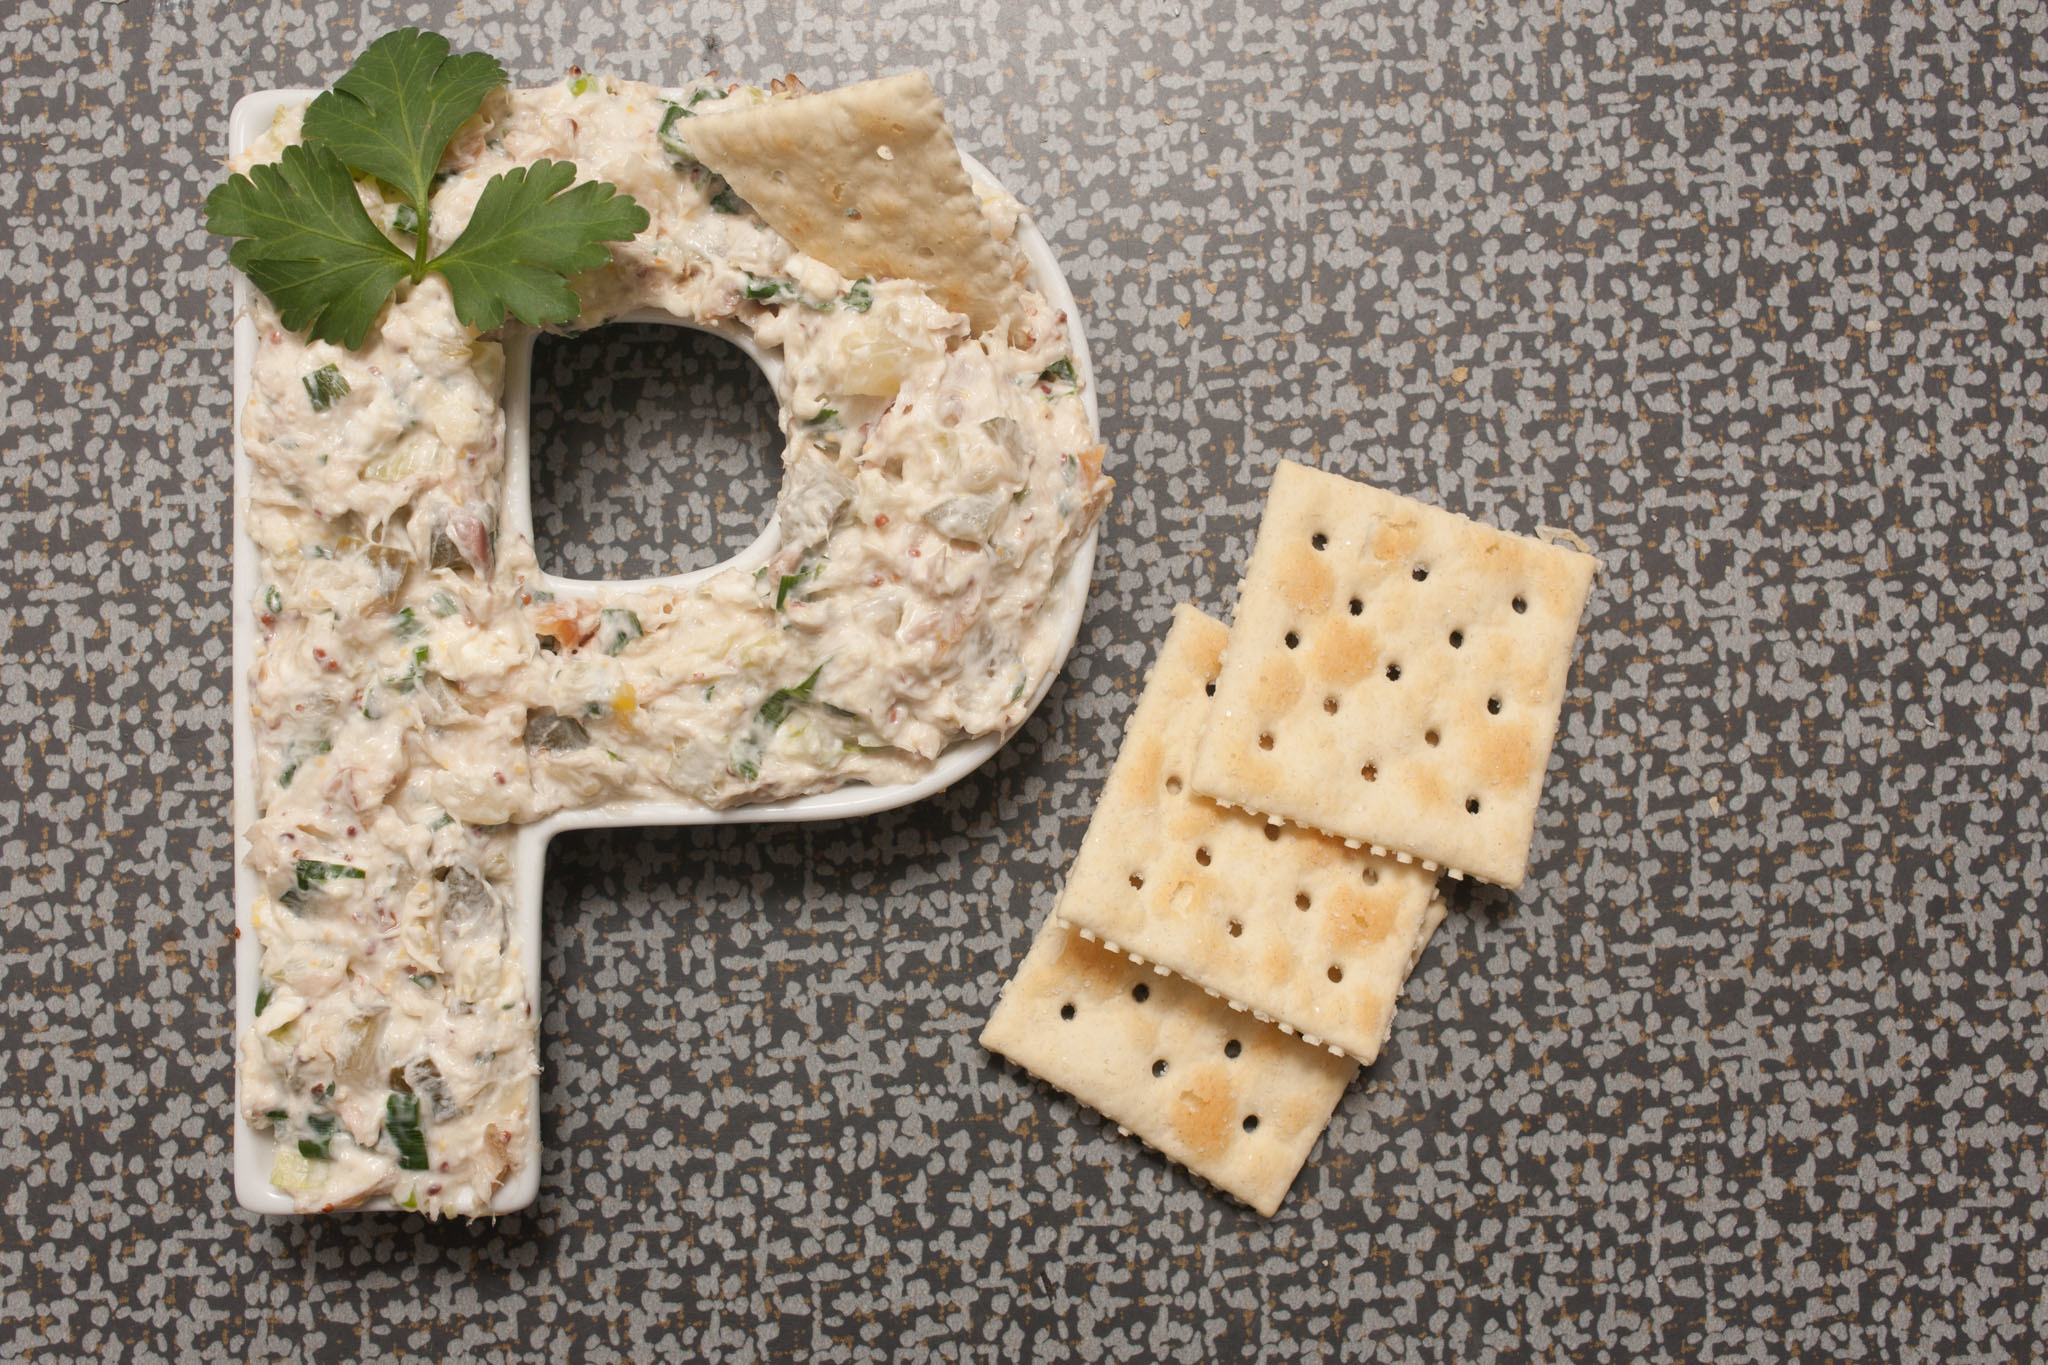 Analogue's Alfredo Nogueira shared a recipe for smoked fish dip, perfect to make for Super Bowl 2014.